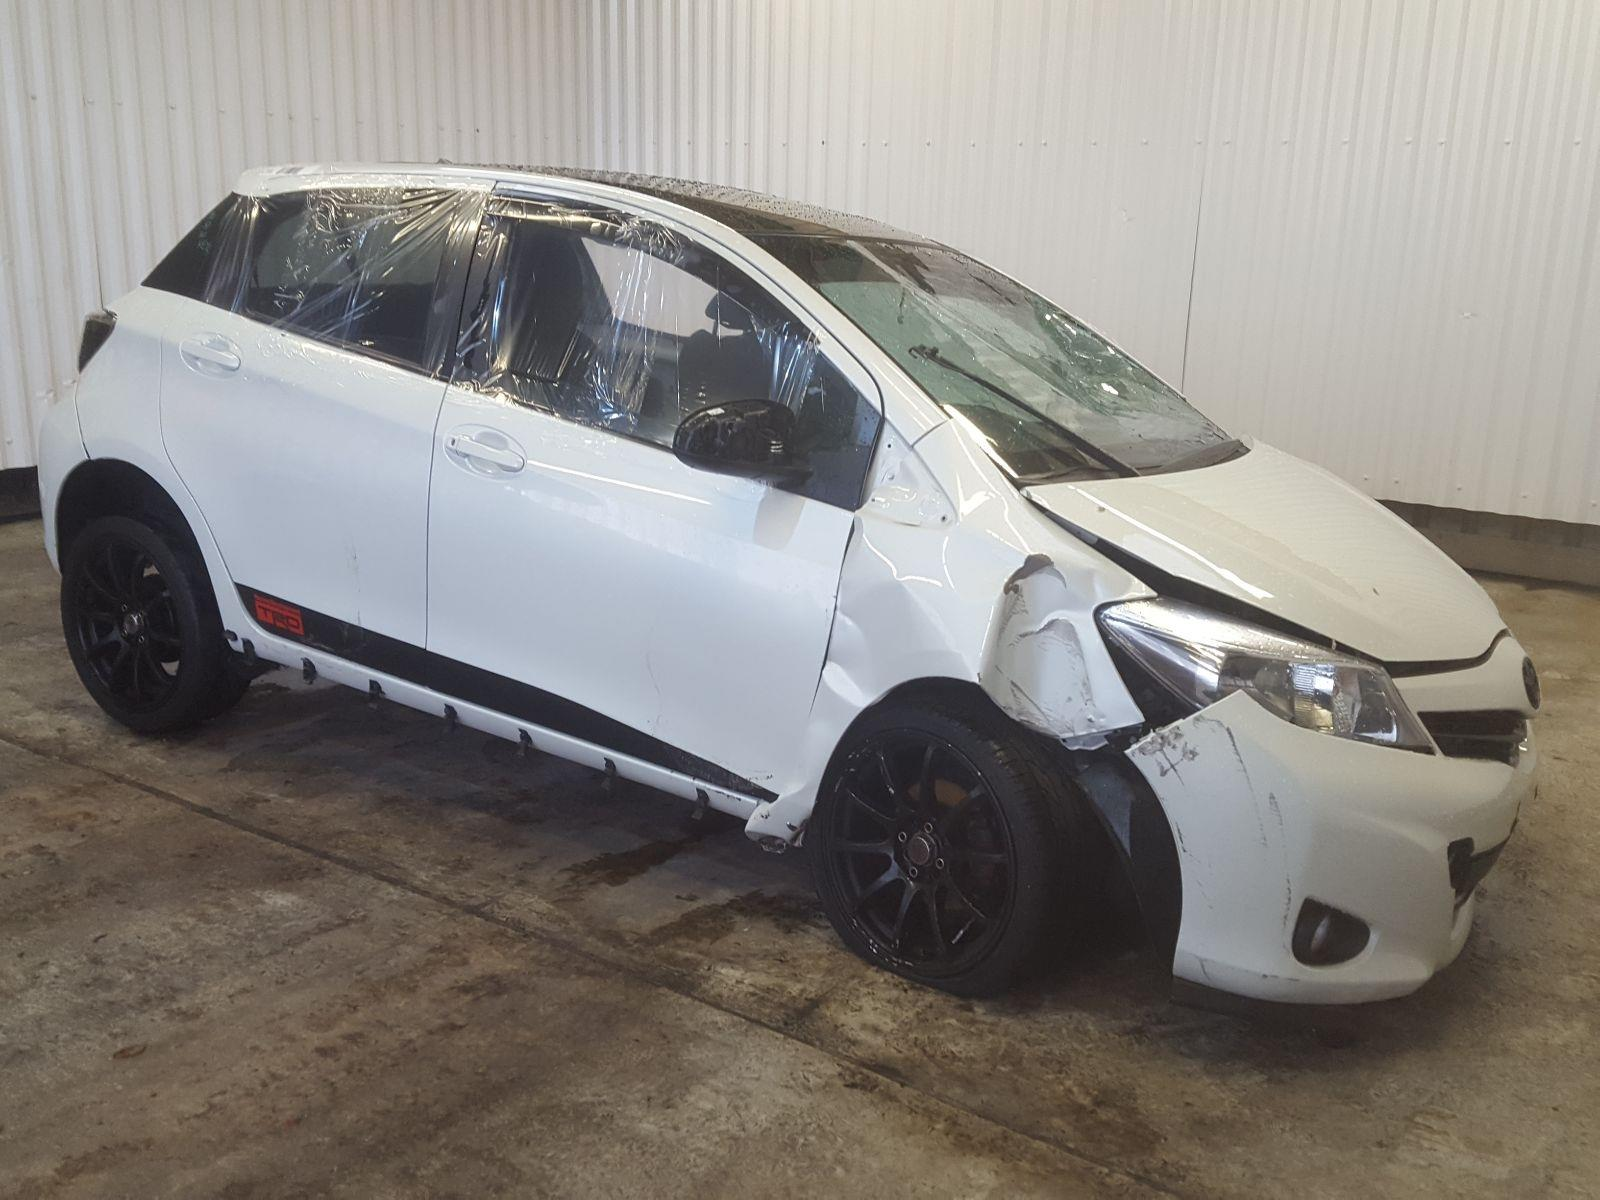 Toyota Yaris 2011 To 2014 Icon Plus VVT-i 5 Door Hatchback